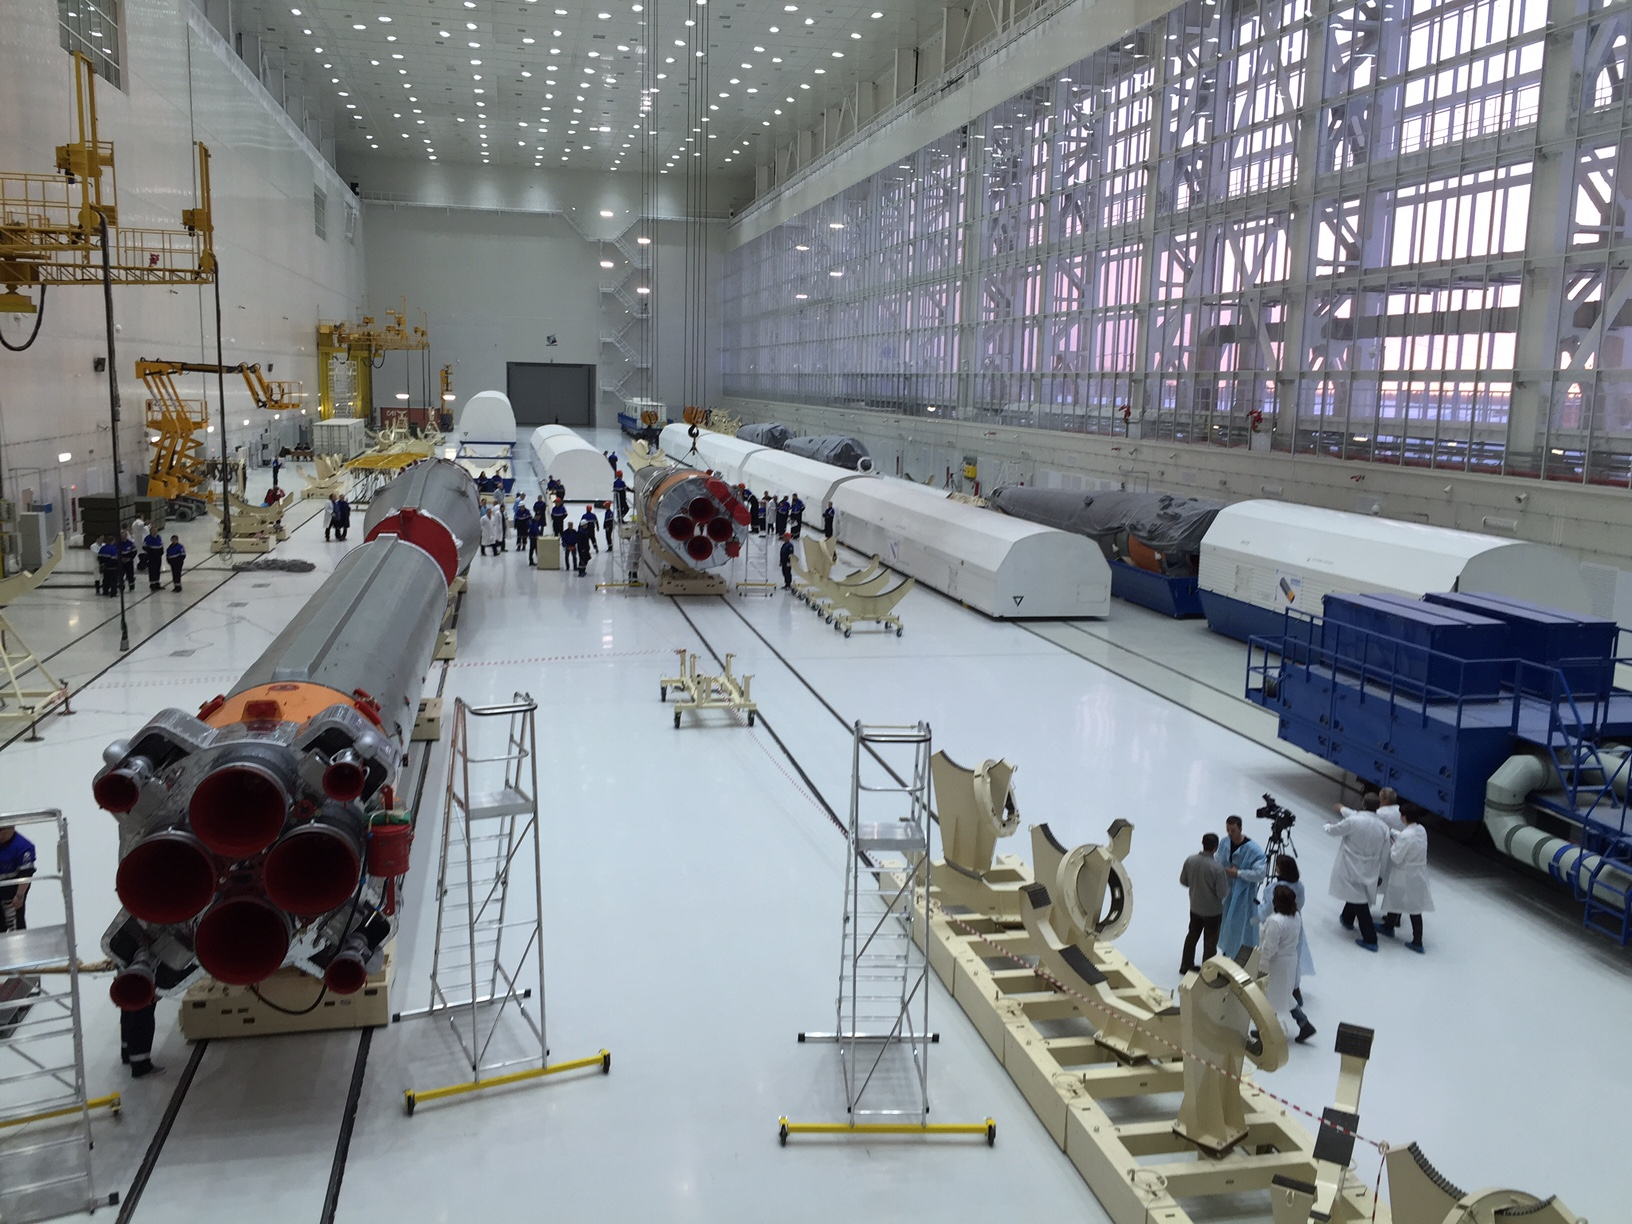 Components of the first Soyuz rocket to launch from the Vostochny Cosmodrome. Credit: Roscosmos